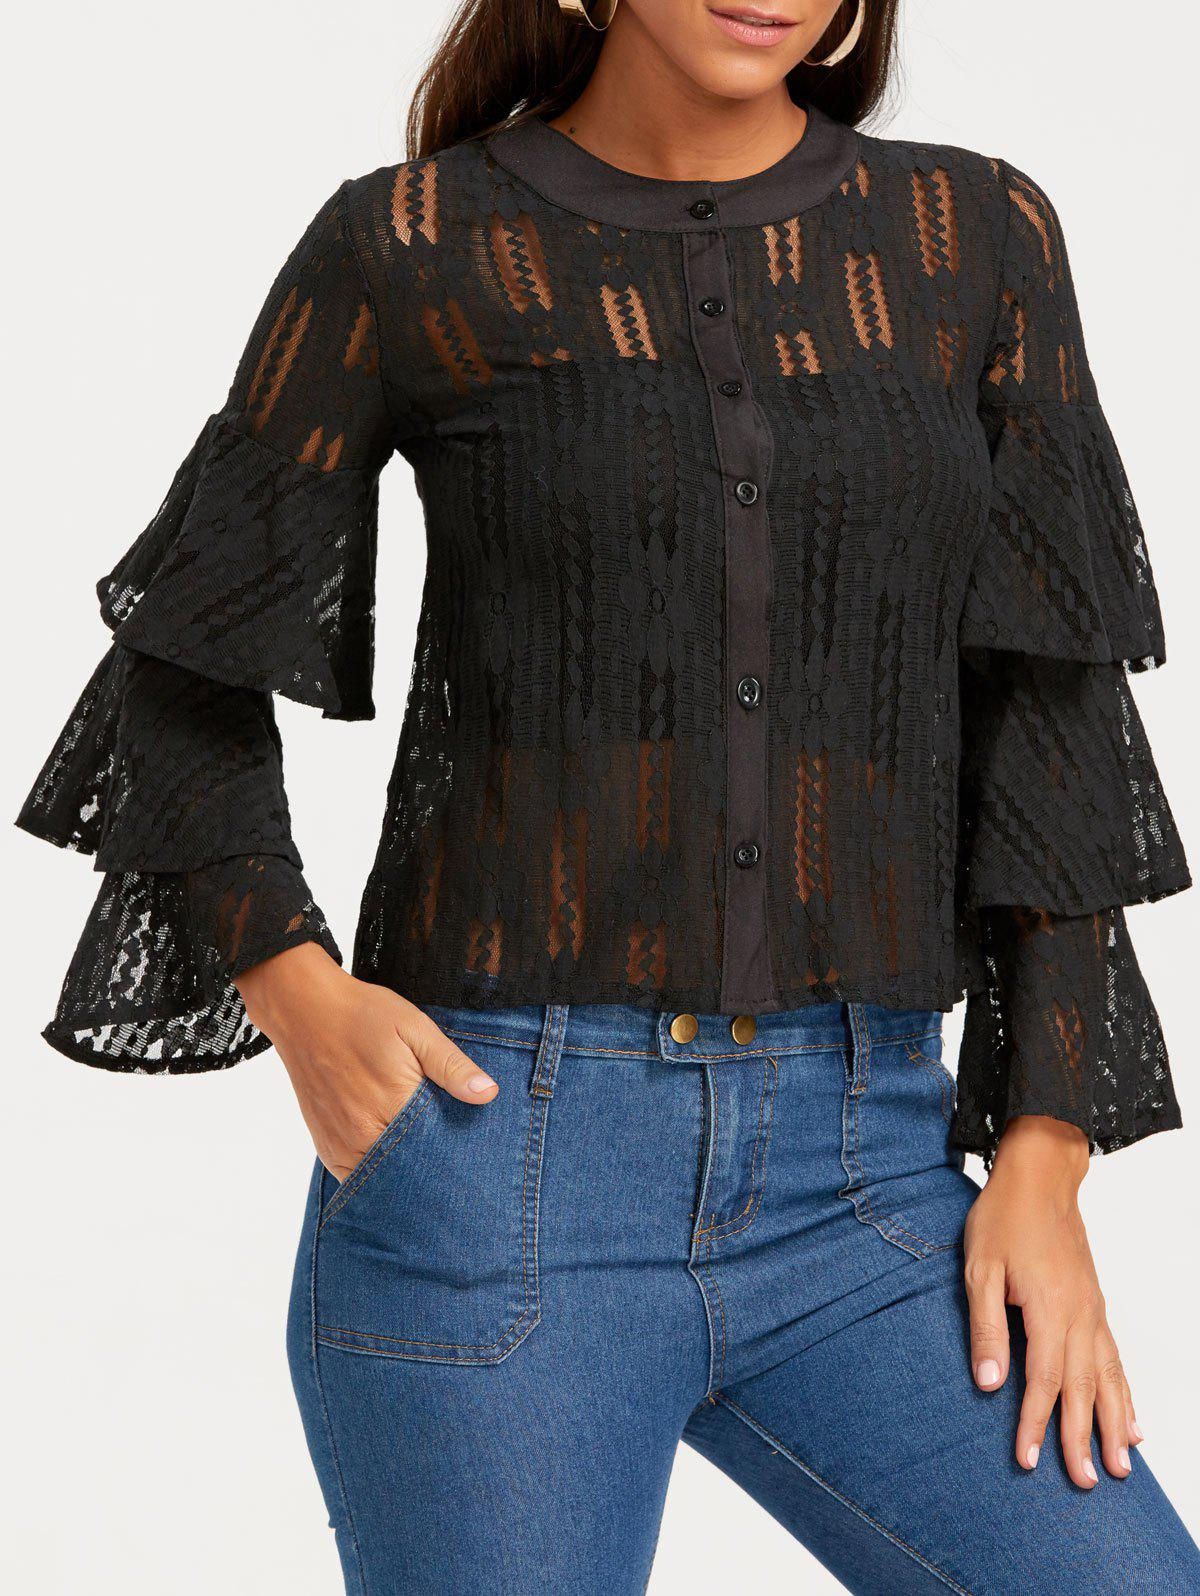 Bell Sleeve Single Breasted See Through Lace Blouse - BLACK M